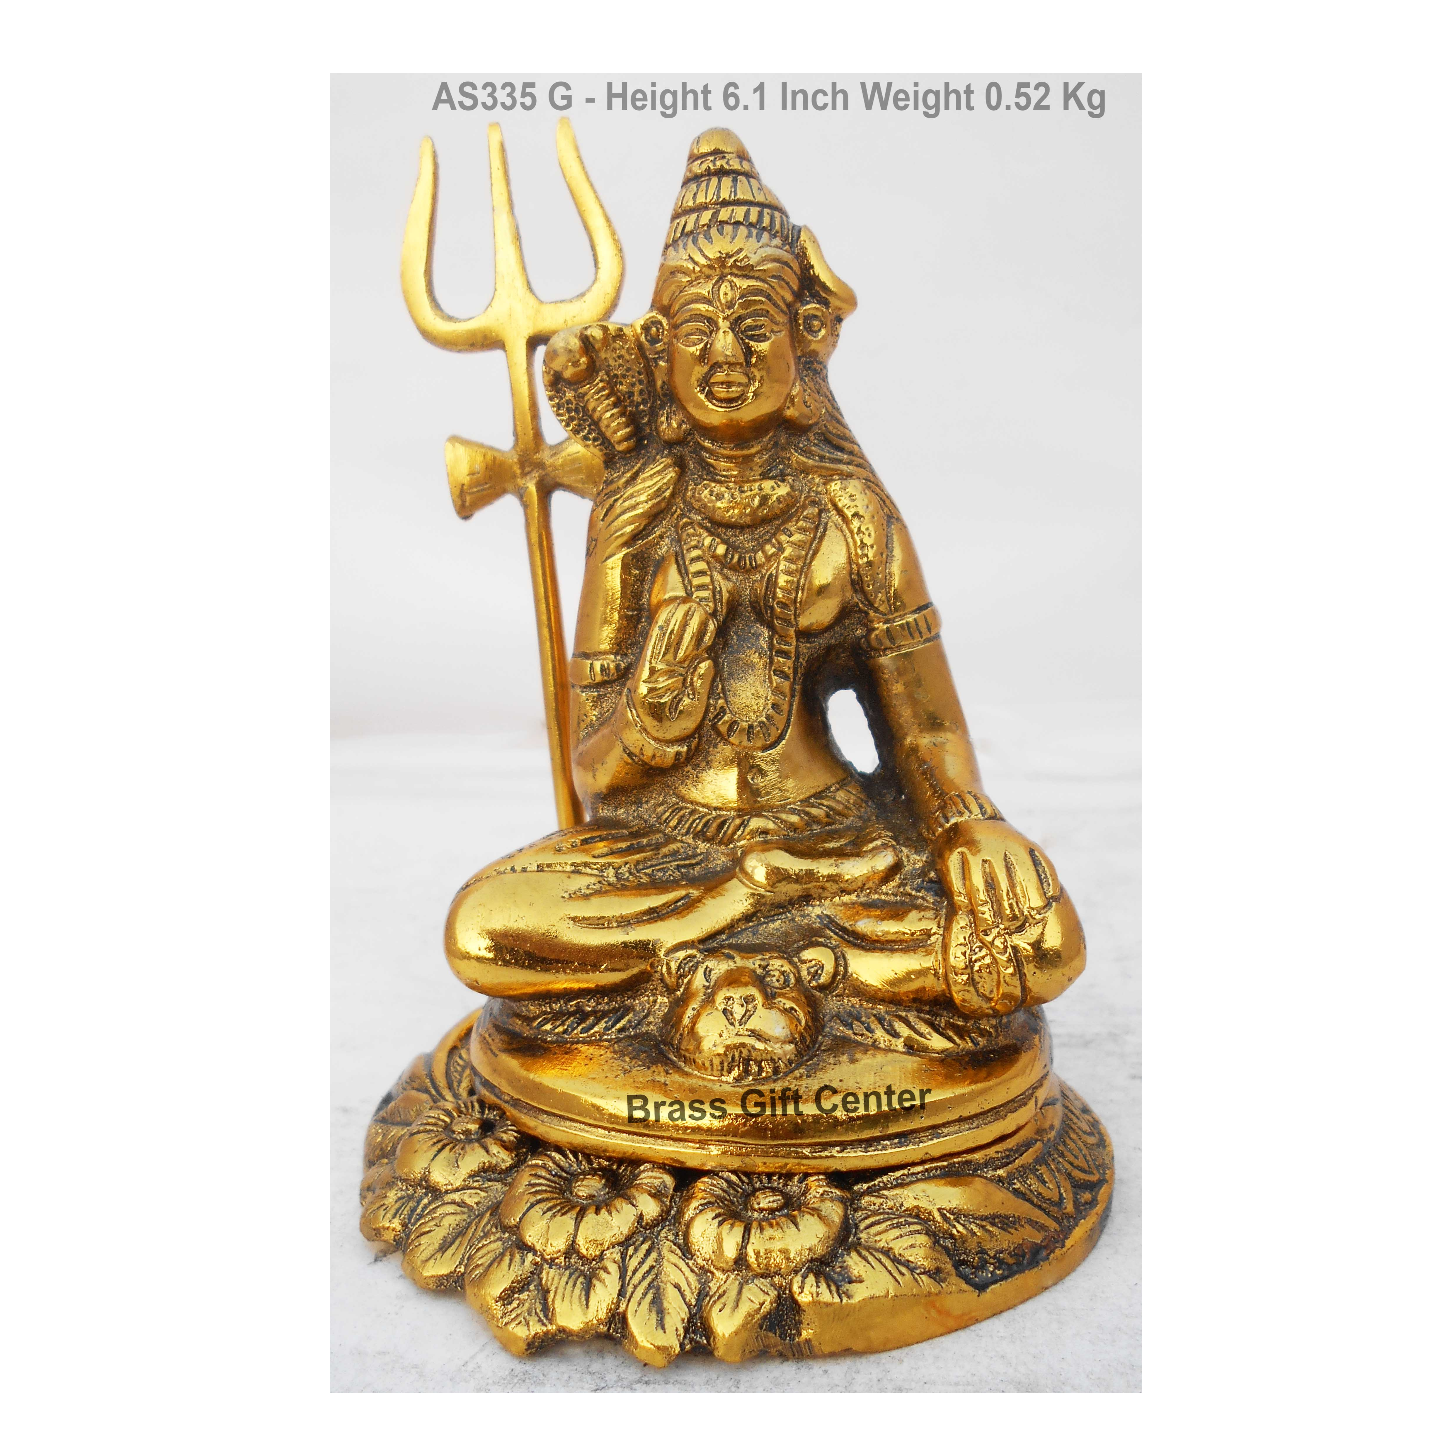 Metallic Shivji Statue Murti idol In Gold Antique Finish - 4.346.1 Inch AS335 G